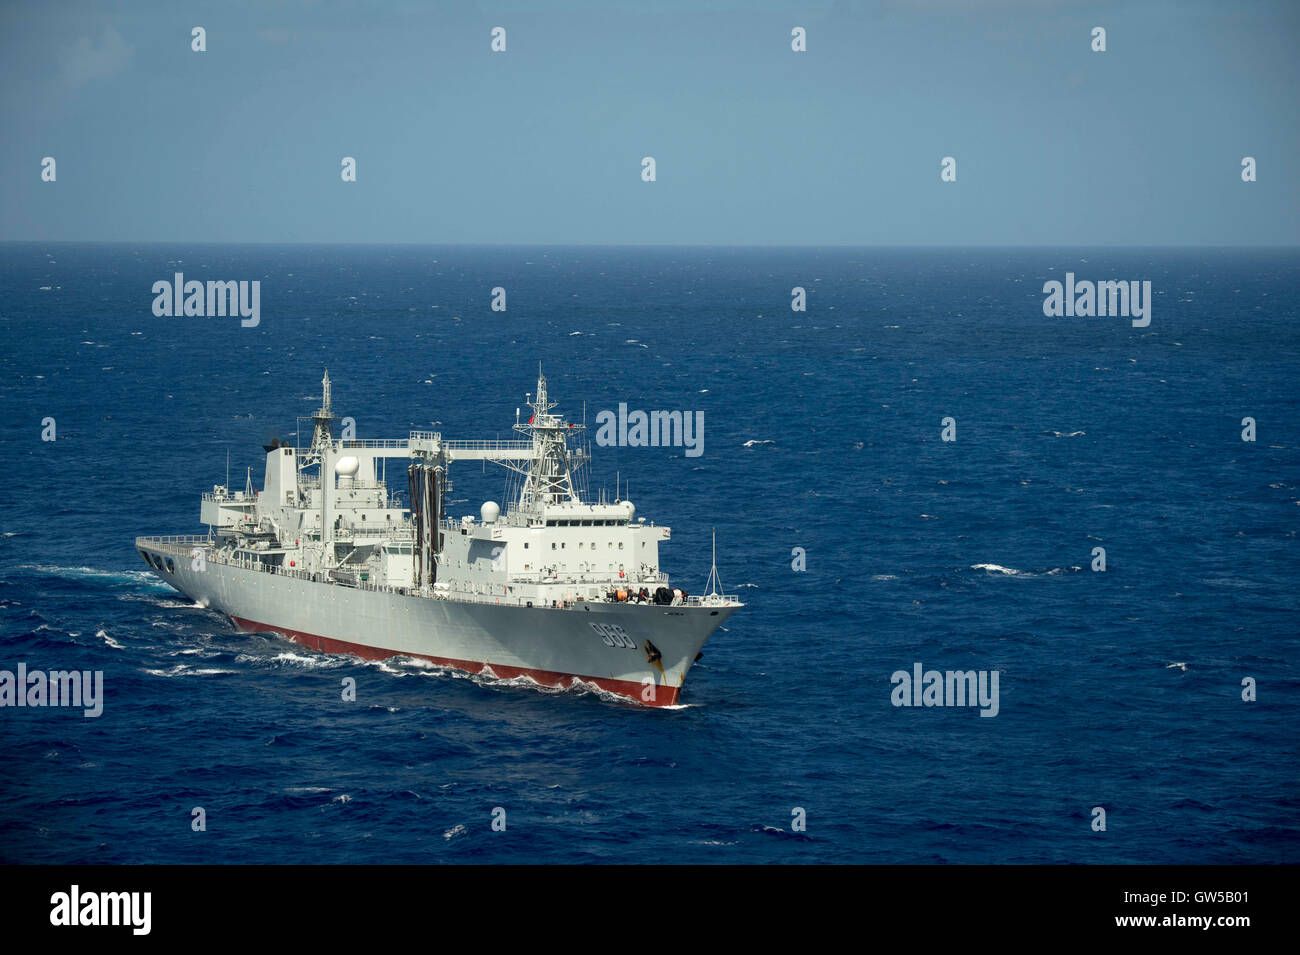 Chinese Navy replenishment ship Gaoyouhu steams in close formation during the Rim of the Pacific exercise June 22, - Stock Image